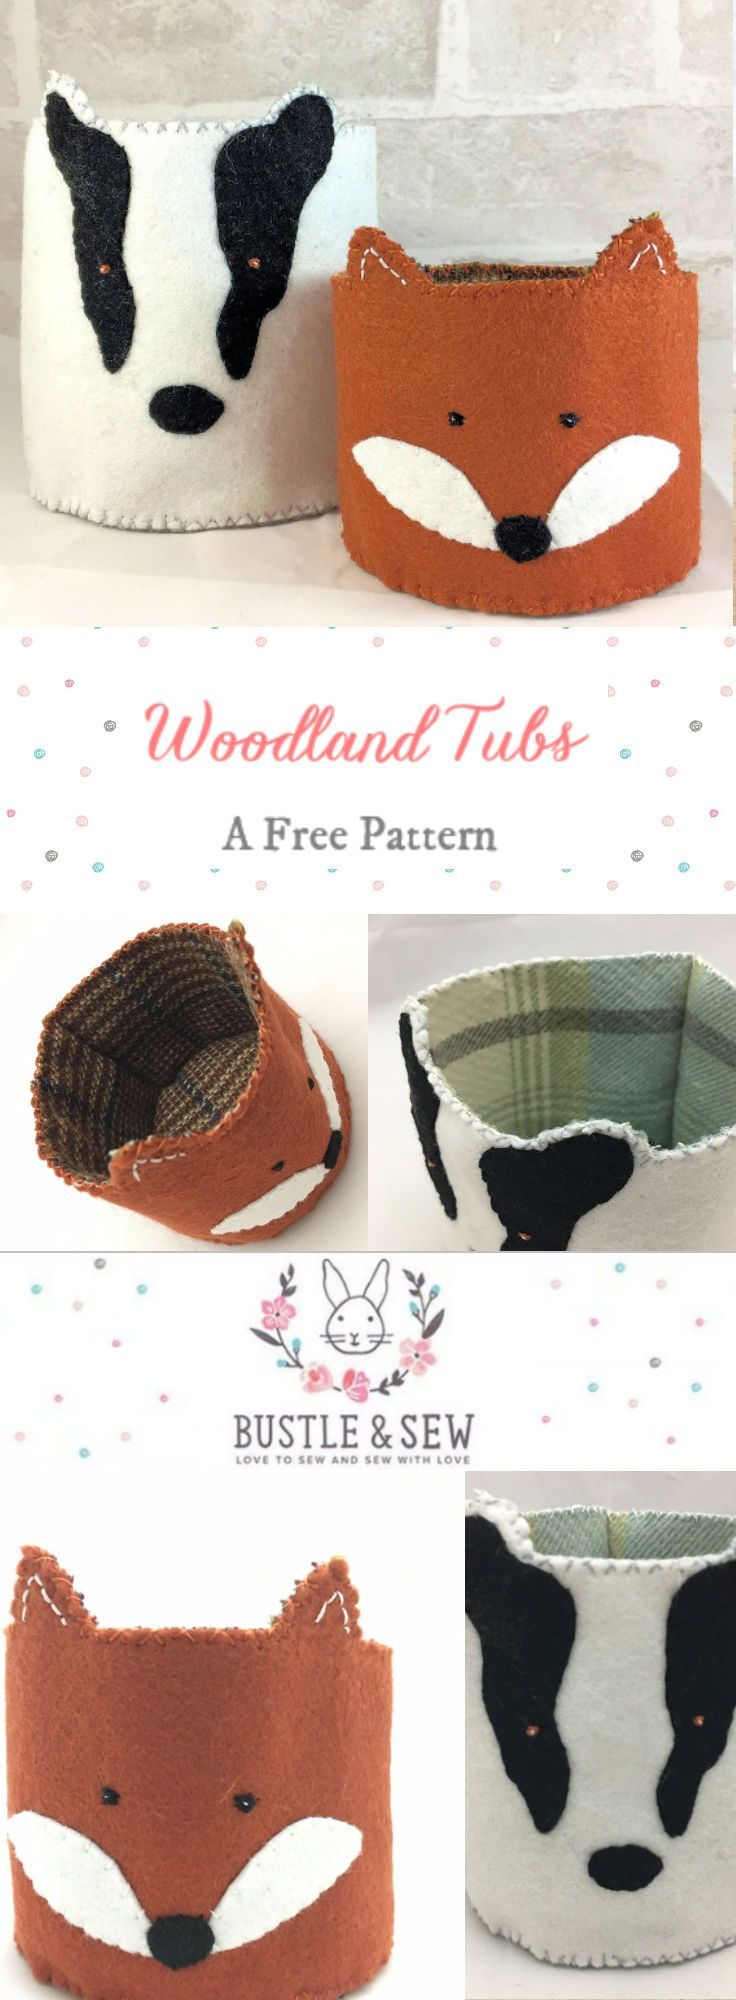 Woodland Mini Tubs pattern by Bustle & Sew  These Woodland Tubs look fab in a nursery or children's room or why not use them to store cotton wool on your dressing table?